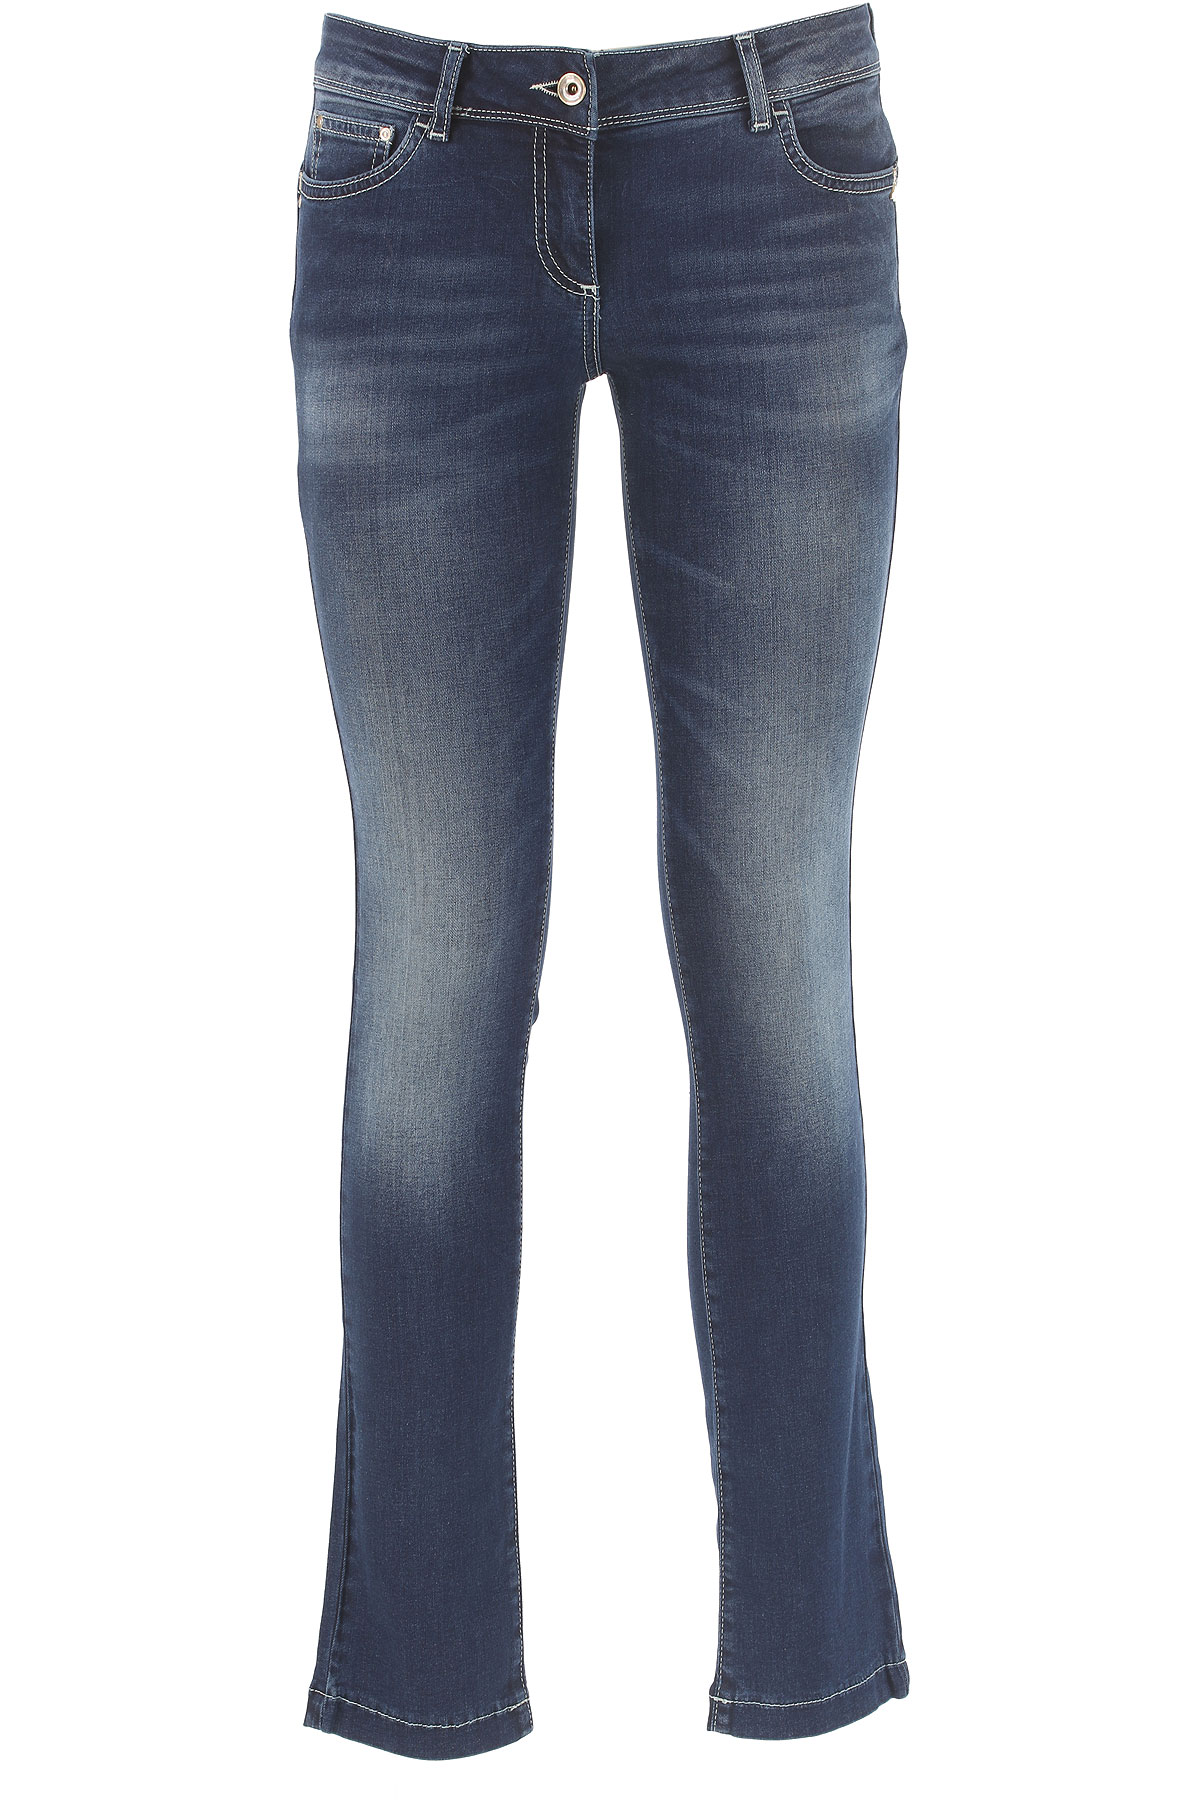 Patrizia Pepe Jeans On Sale, Denim Blue, Cotton, 2017, 25 26 27